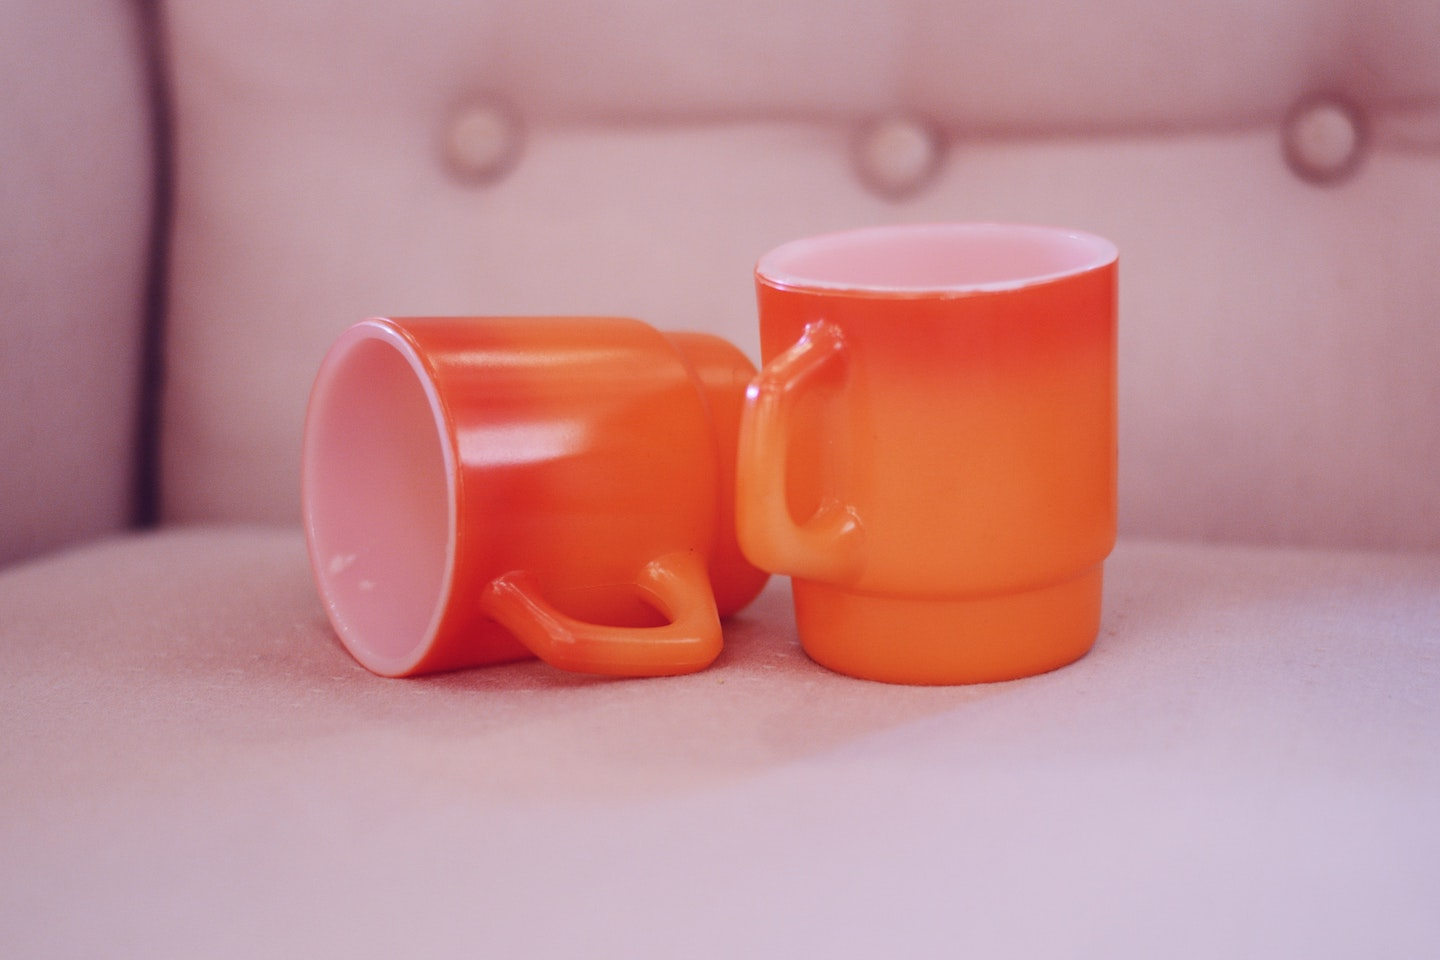 Two empty orange mugs are seen on a chair. One is laying sideways.